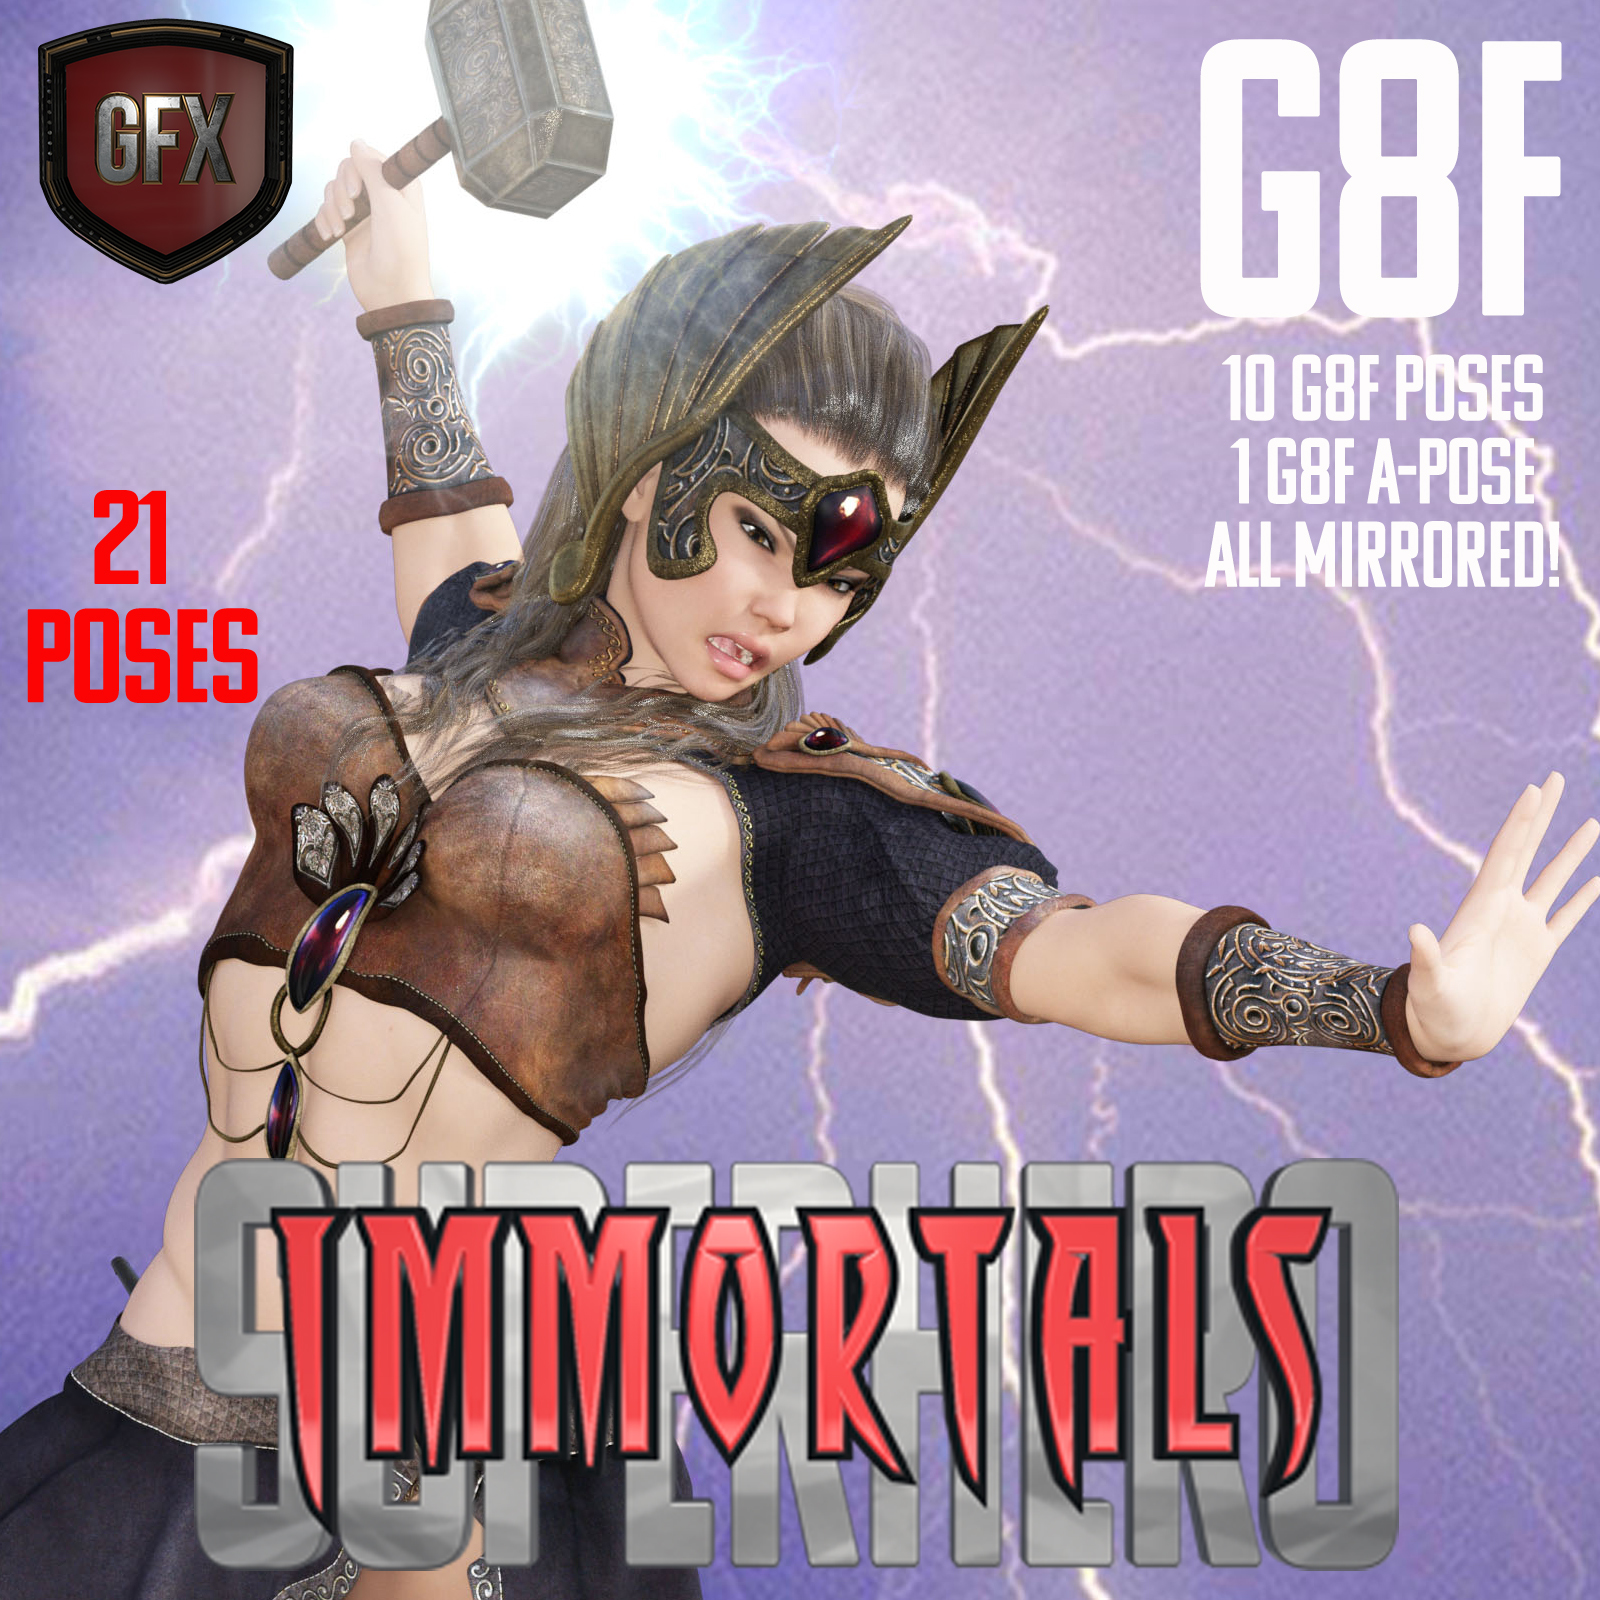 SuperHero Immortals for G8F Volume 1